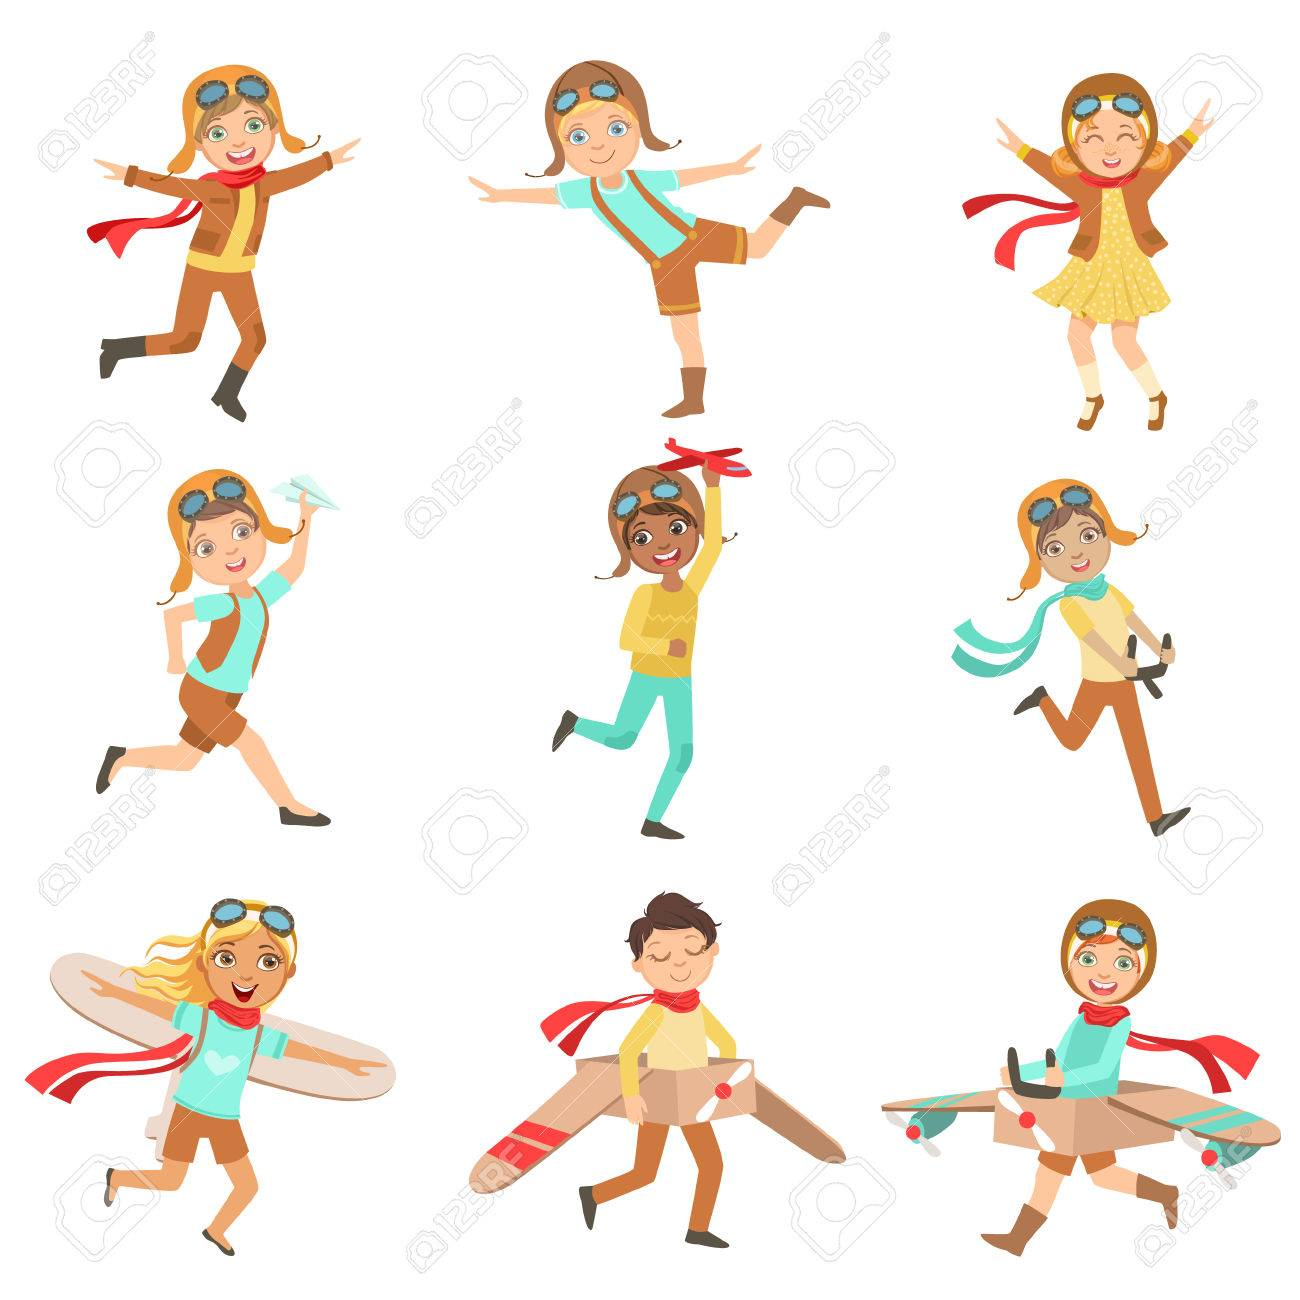 Kids Playing Dreaming To Be Pilots Set Of Bright Color Isolated Vector Drawings In Simple Cartoon